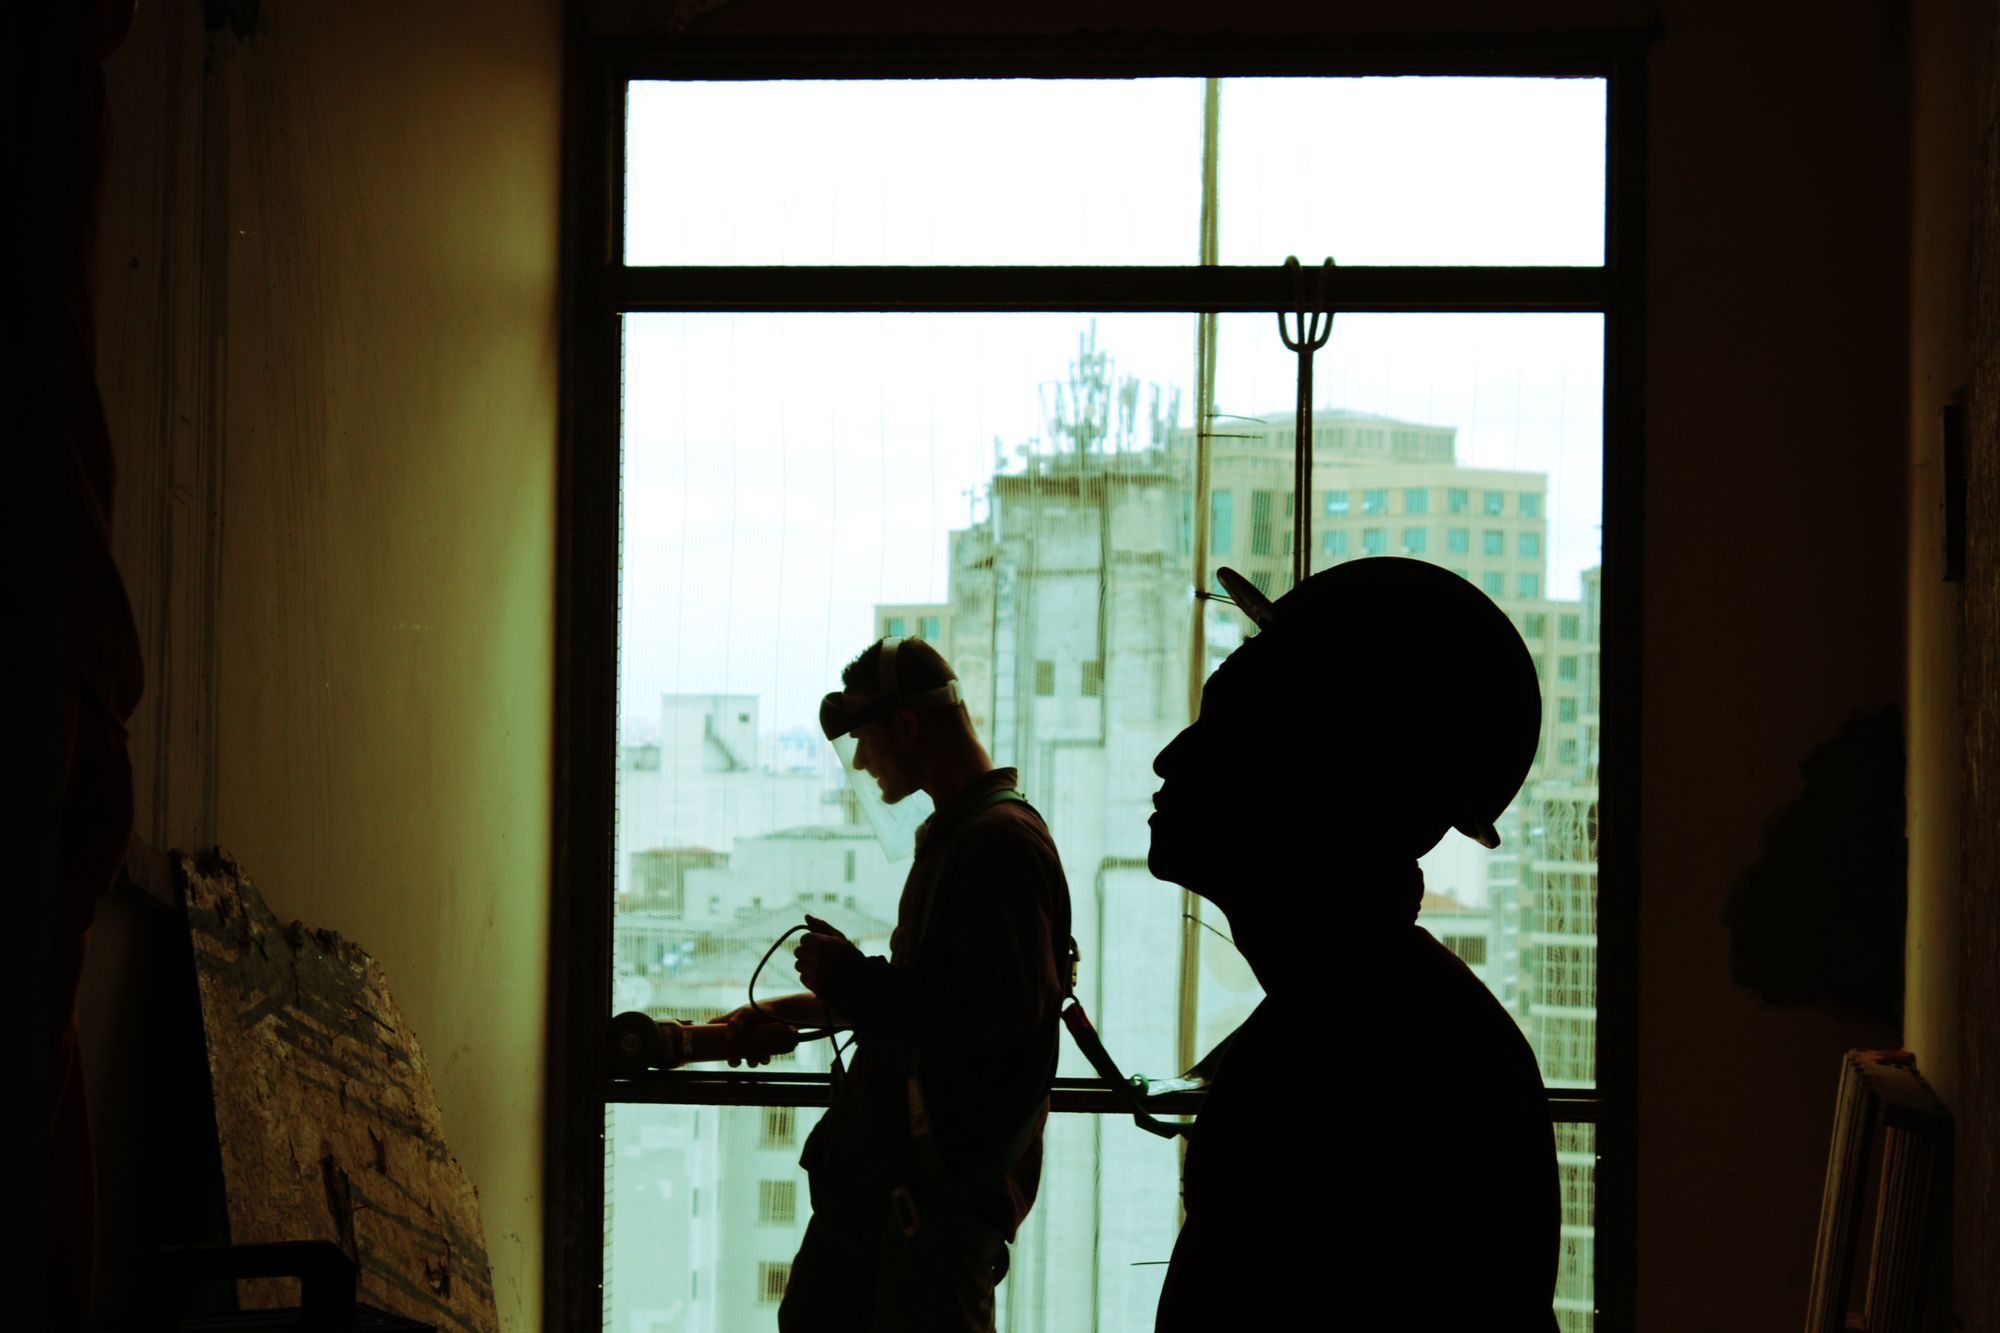 Silhouette of two workers on a building site